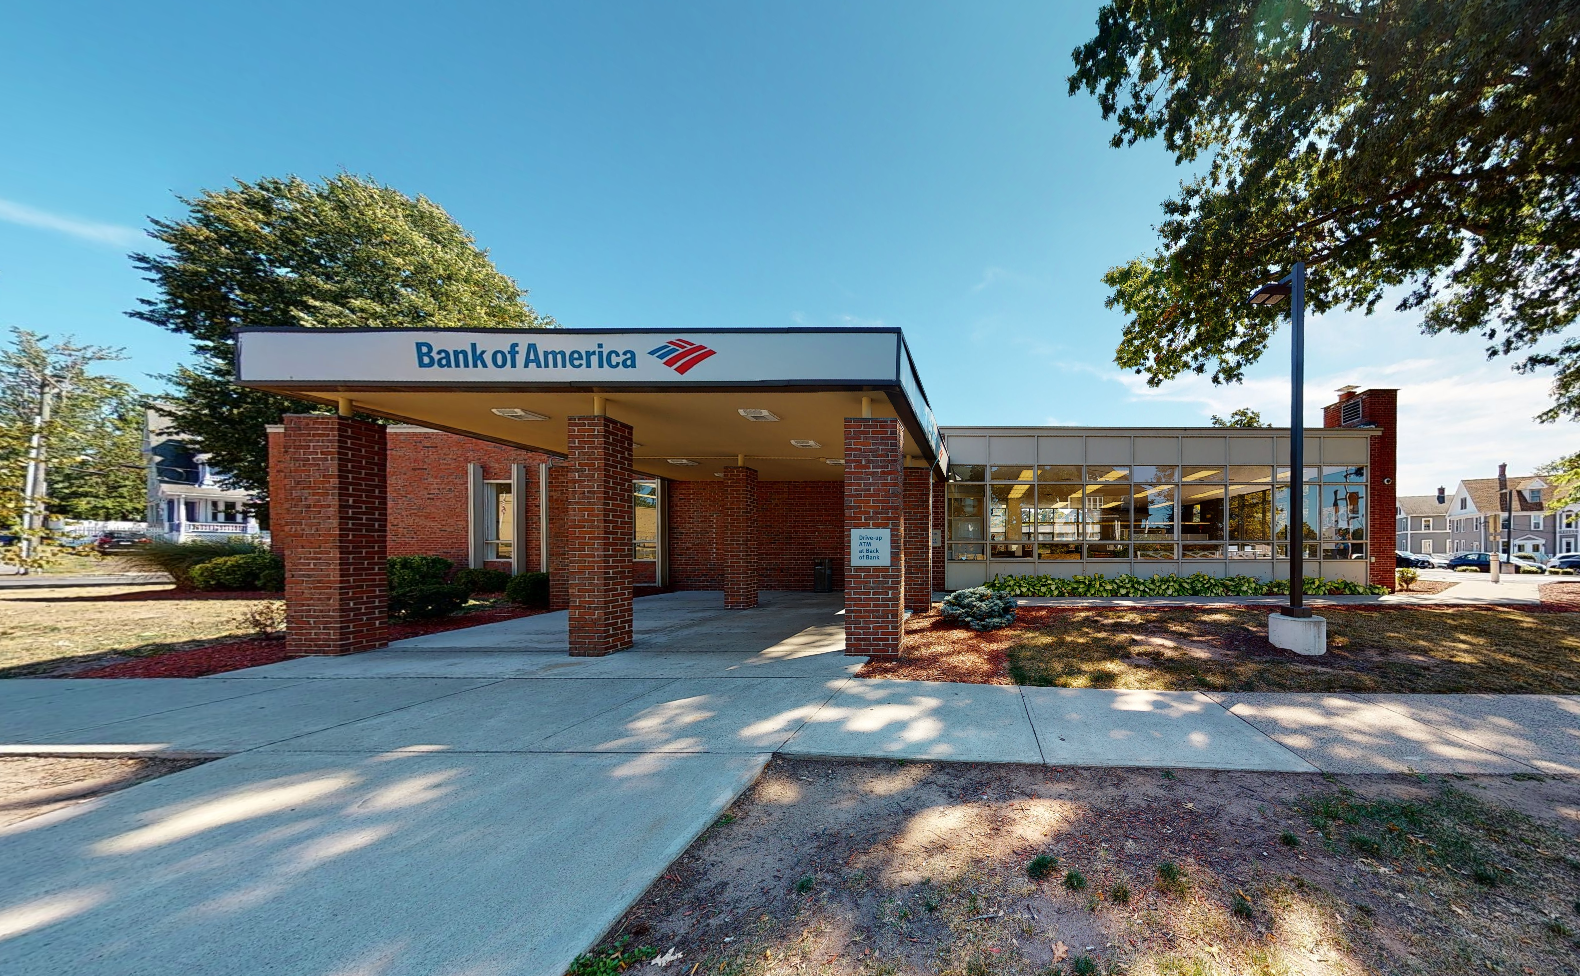 Bank of America financial center with drive-thru ATM and teller | 330 W Main St, New Britain, CT 06052